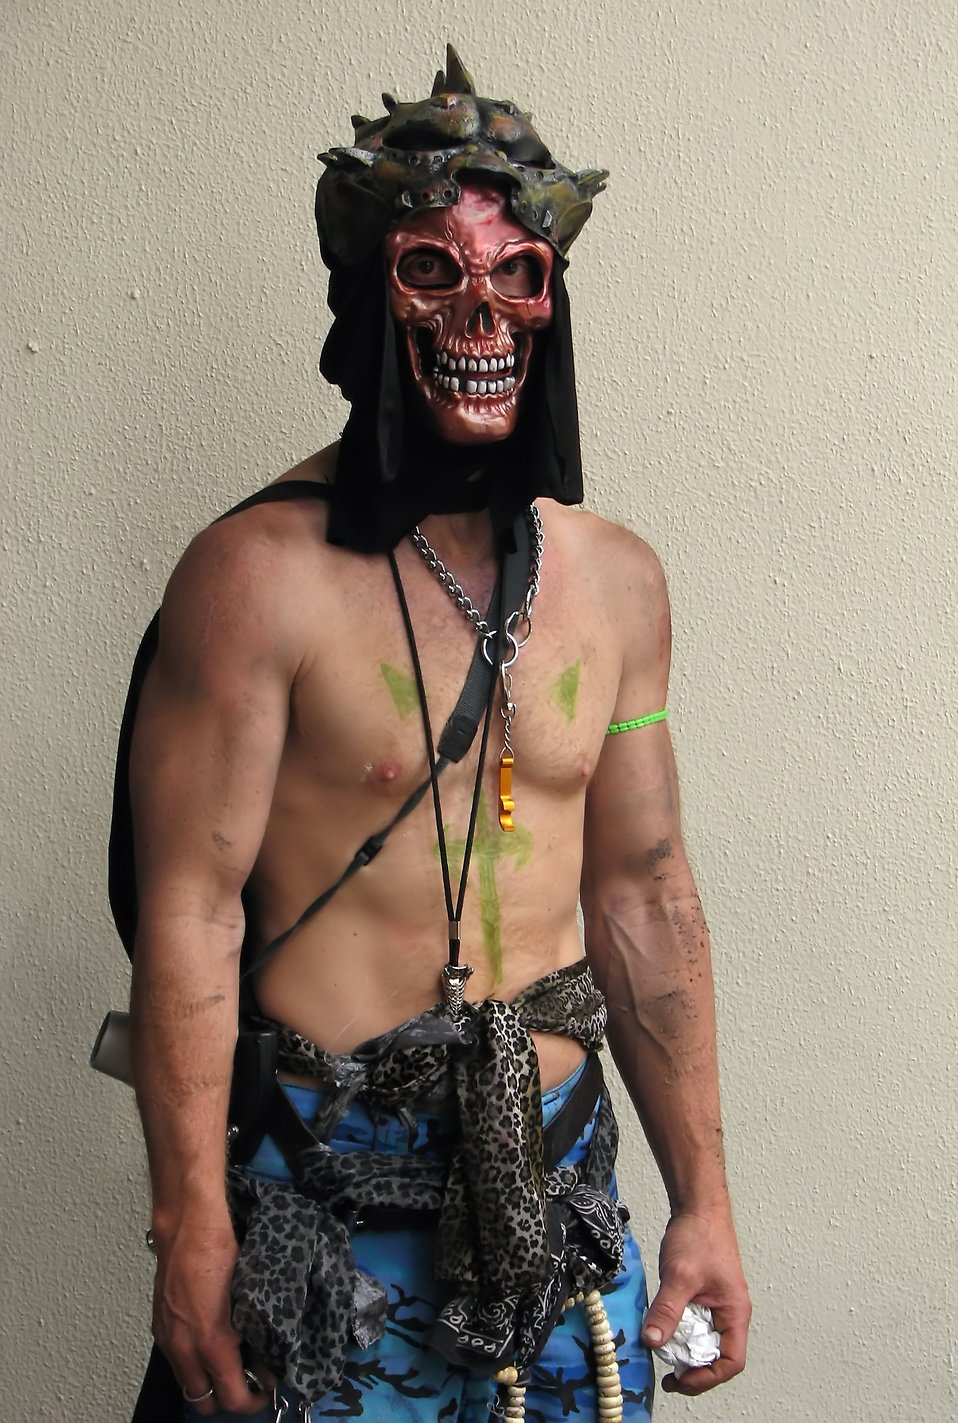 A man in a skull mask and costume at Dragoncon 2009 in Atlanta, Georgia : Free Stock Photo